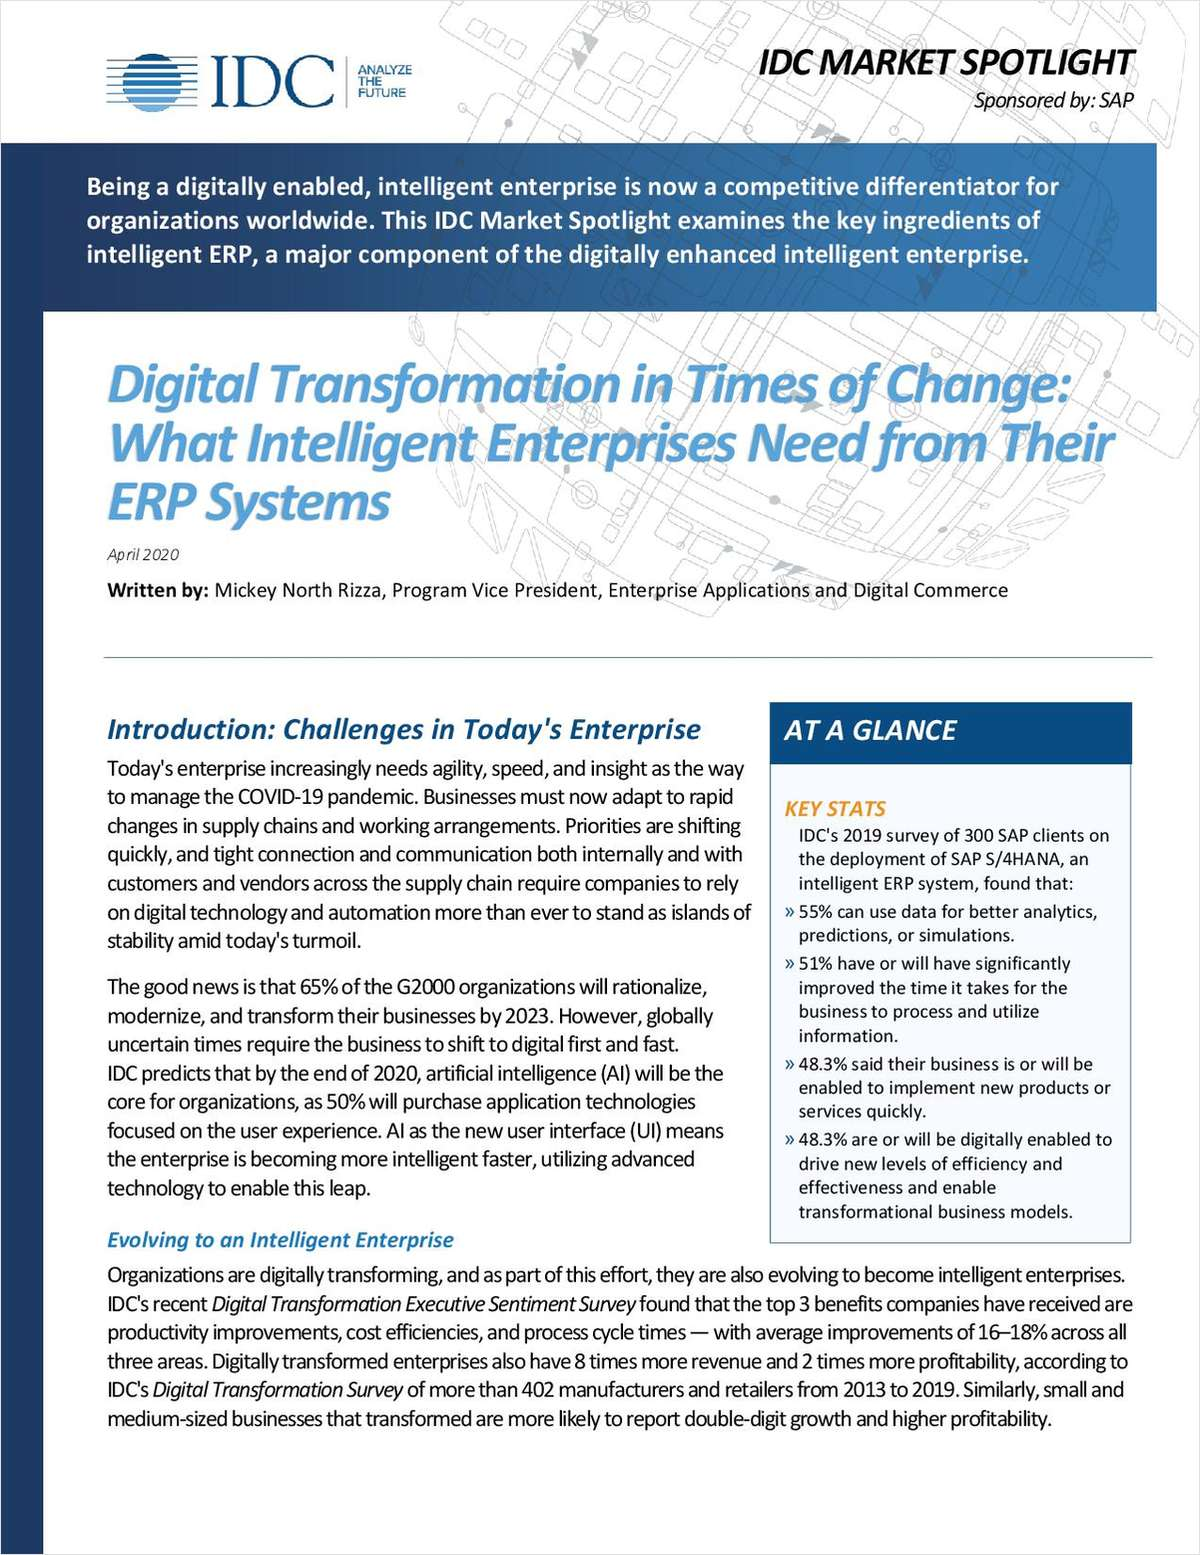 Digital Transformation in Times of Change: What Intelligent Enterprises Need from their ERP Systems